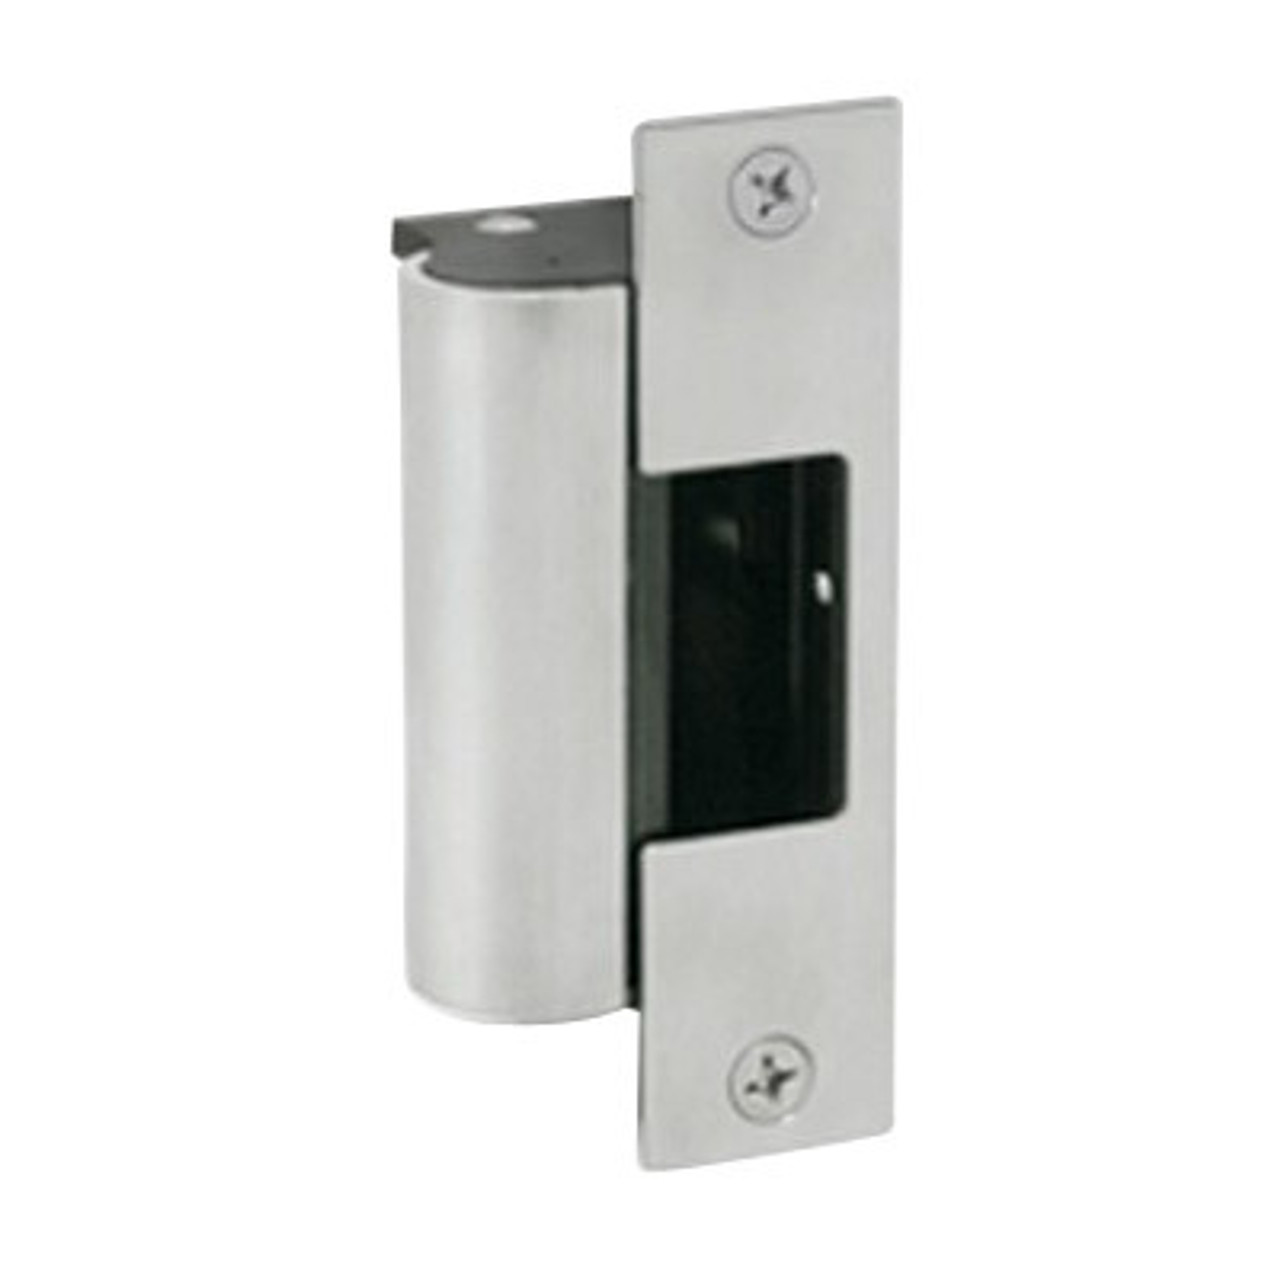 1006CDB-630 Hes 1006 Series Complete Electric Strike for Deadbolt Lock in Satin Stainless Finish